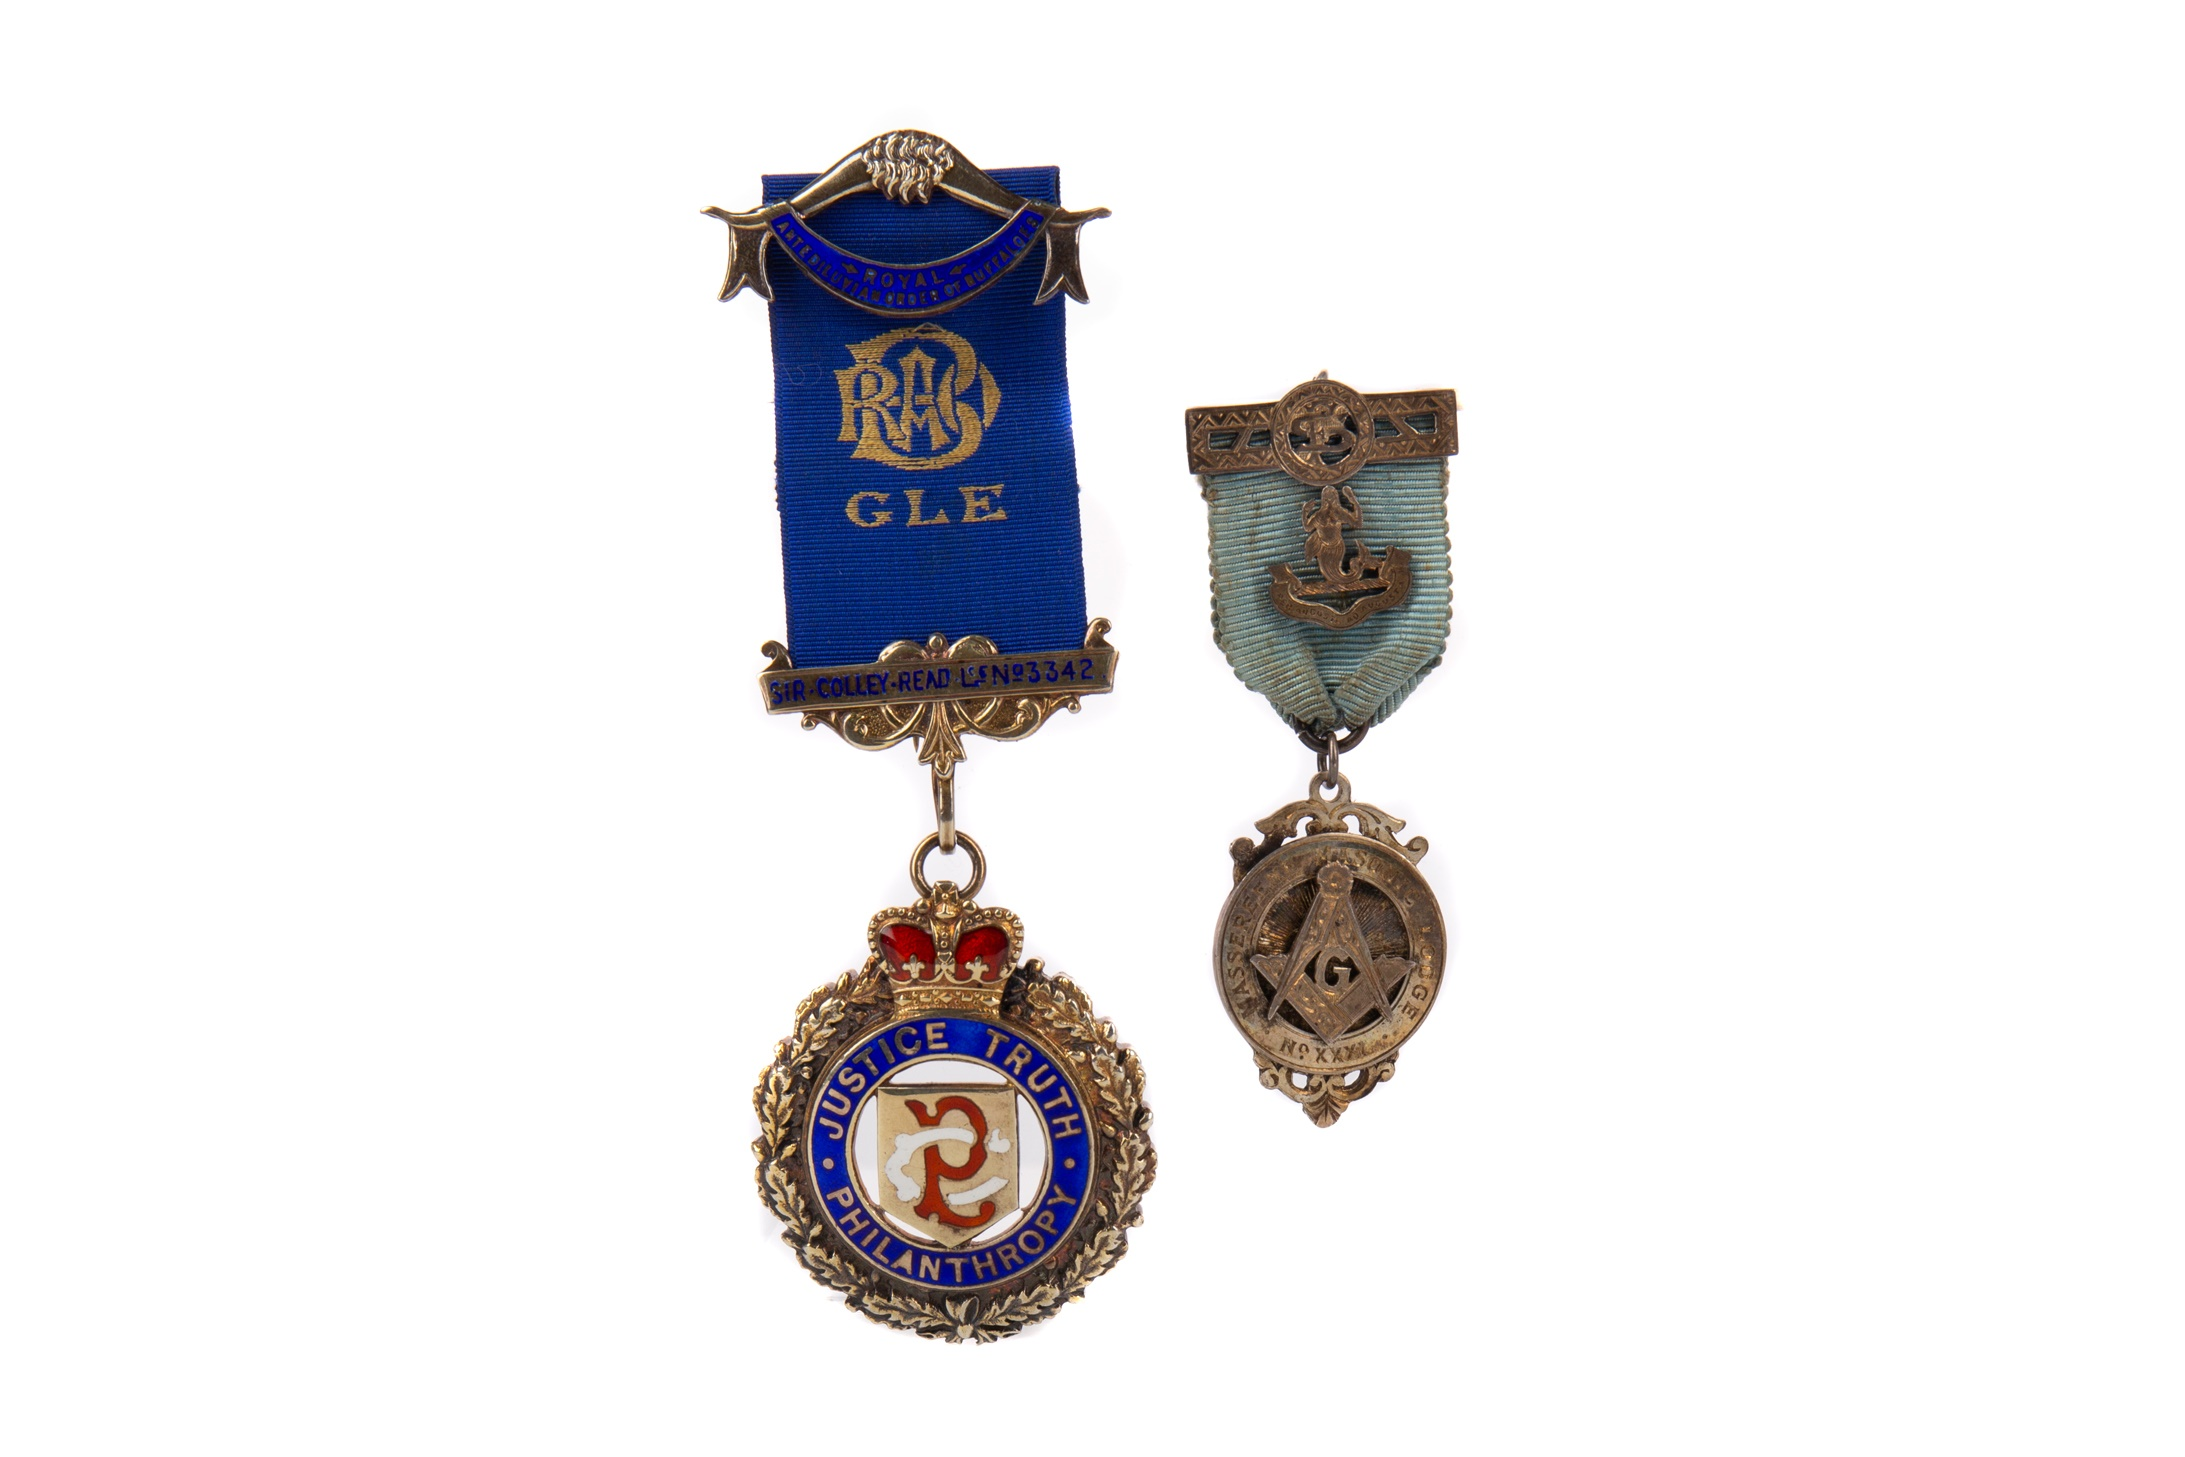 A MASONIC INTEREST SILVER AND ENAMEL JEWEL ALONG WITH ANOTHER